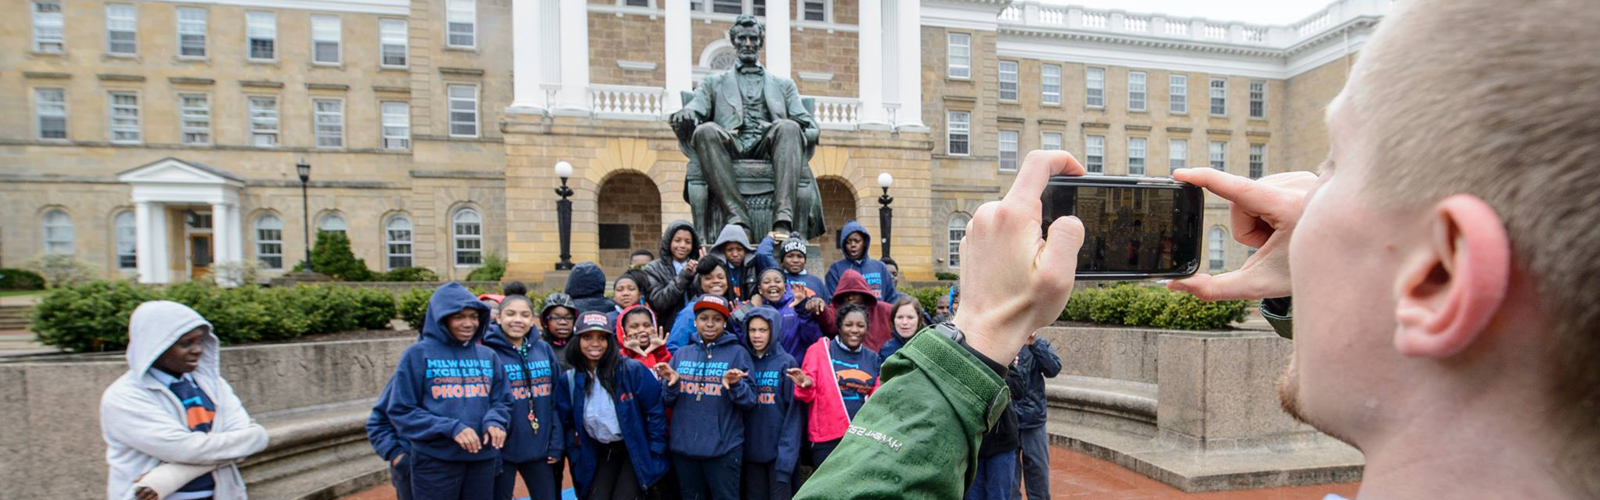 Milwaukee Excellence Charter School students have their photo taken in front of Abe at UW–Madison